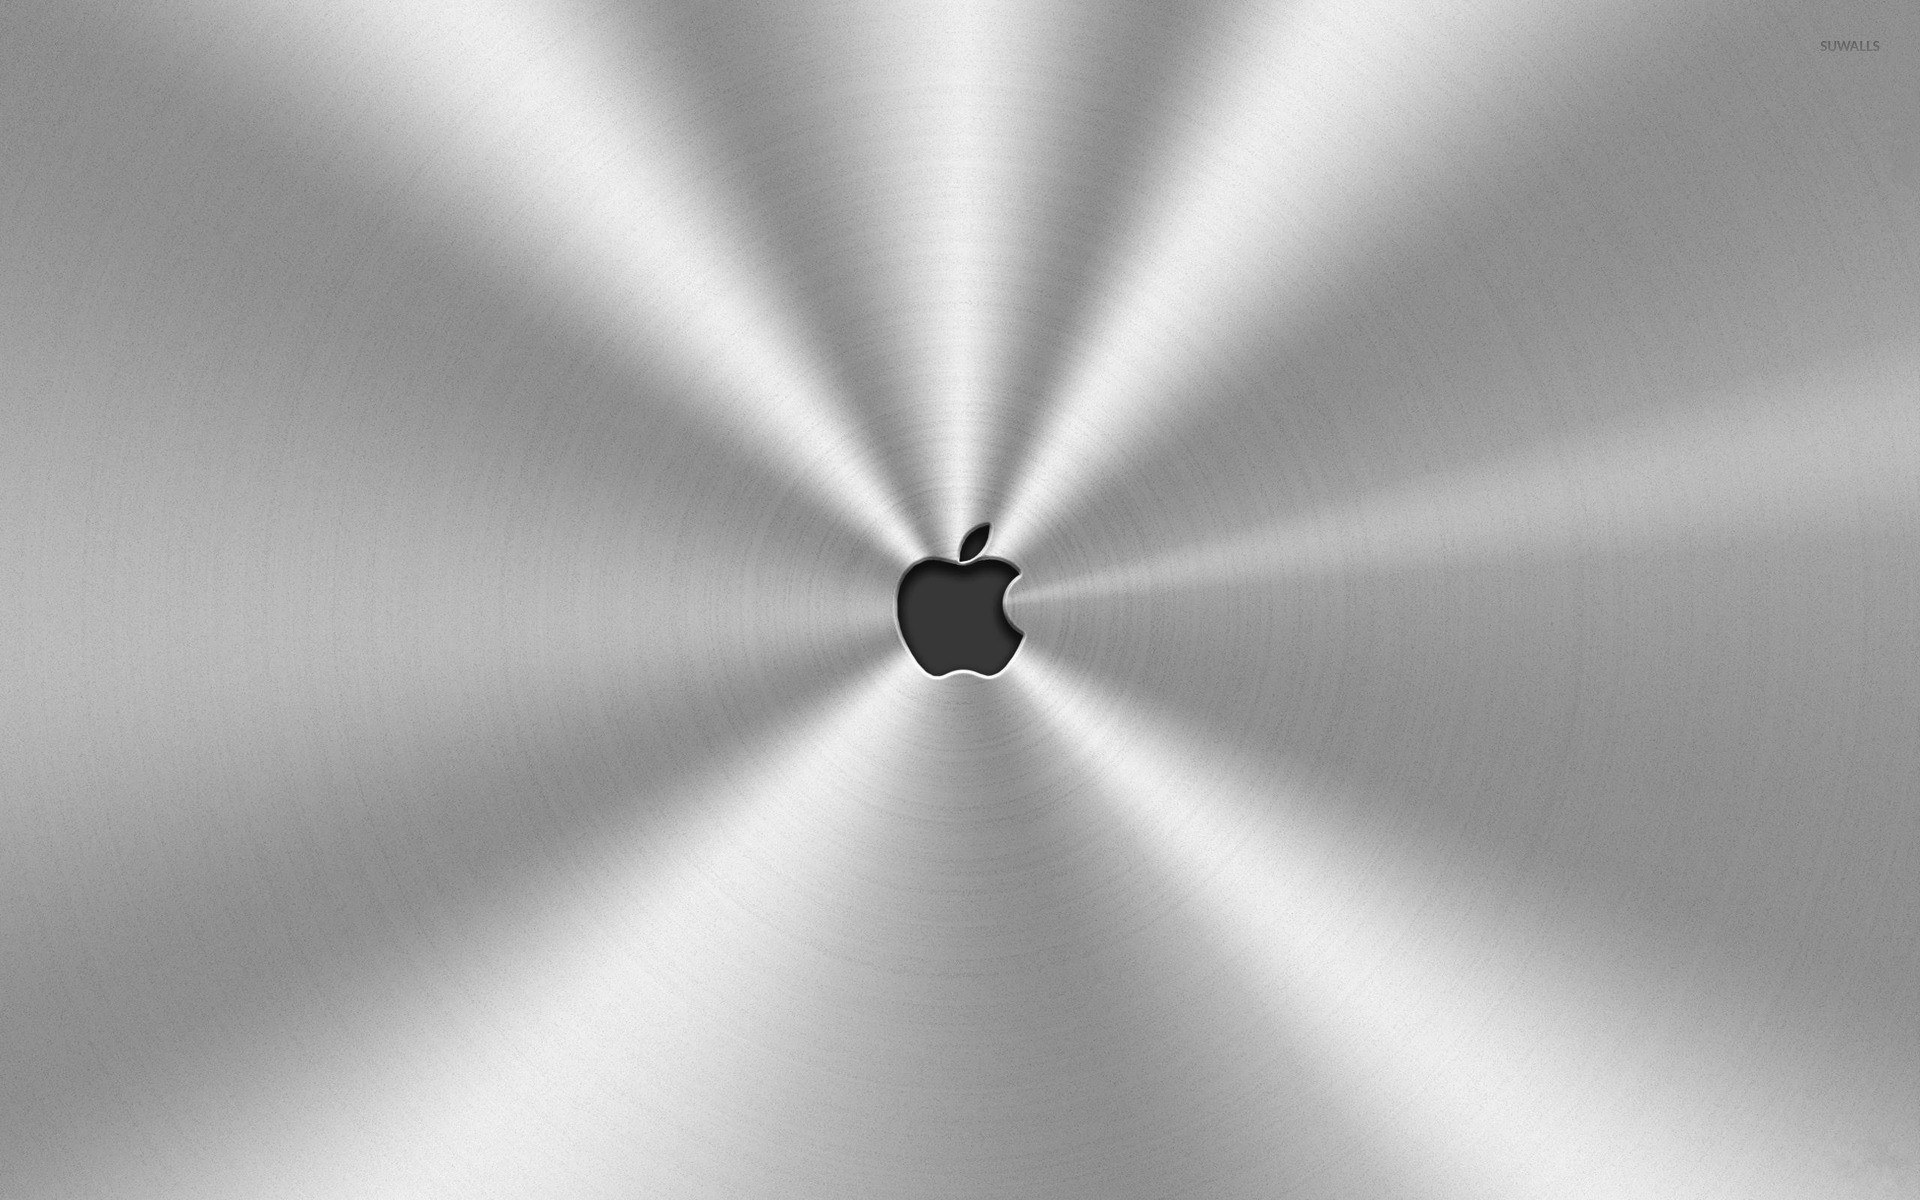 Res: 1920x1200, Apple logo surrounded by metal wallpaper